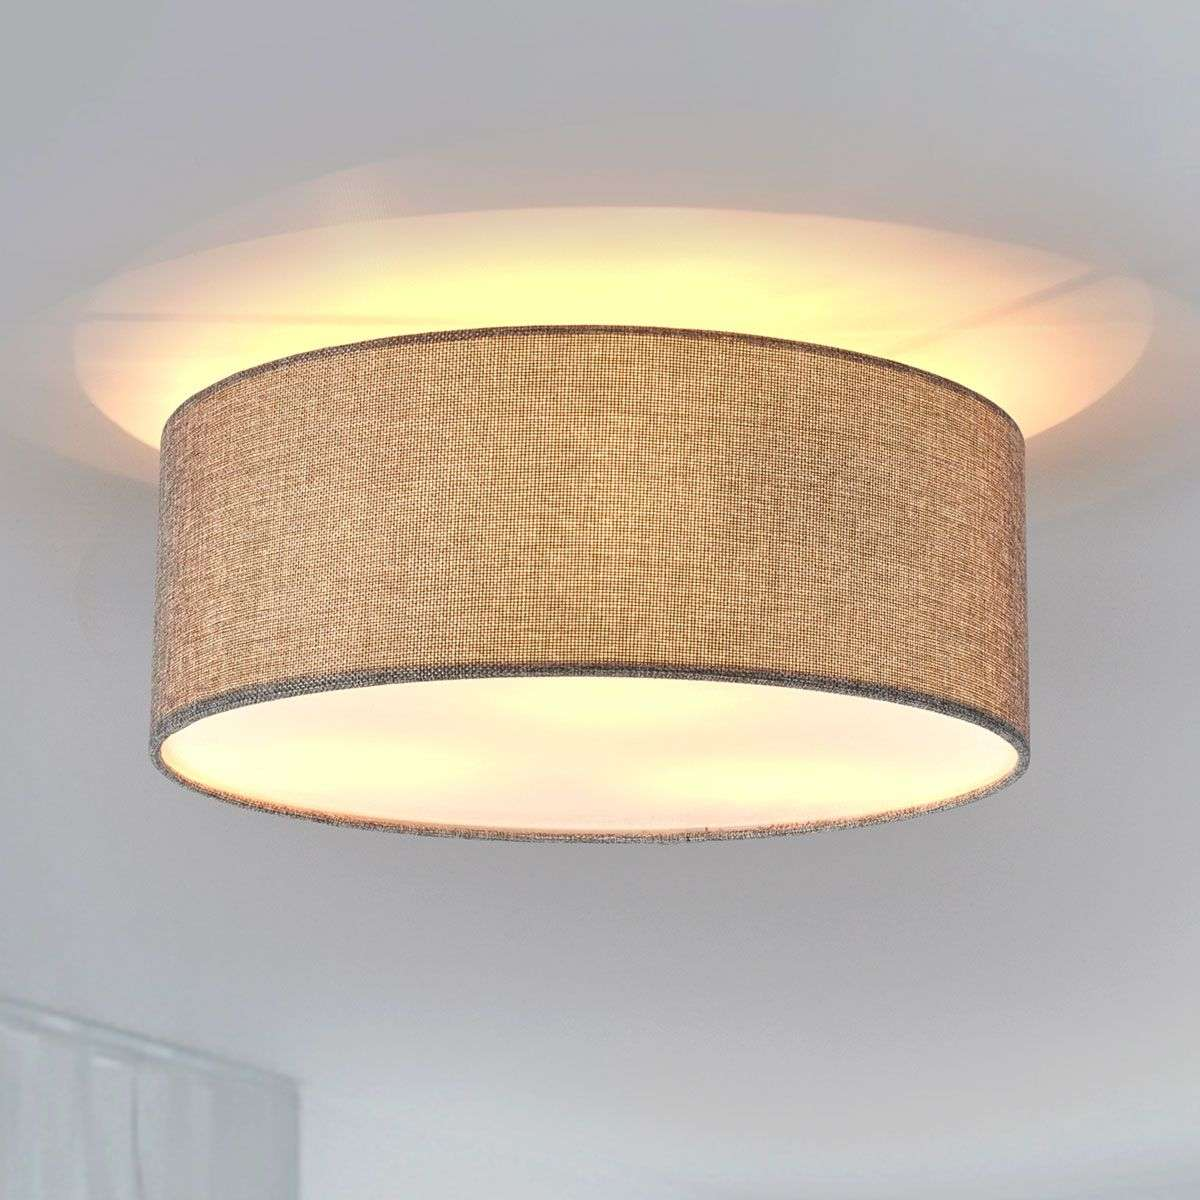 Henrika ceiling light made from grey fabric lights henrika ceiling light made from grey fabric 4018018 38 mozeypictures Choice Image